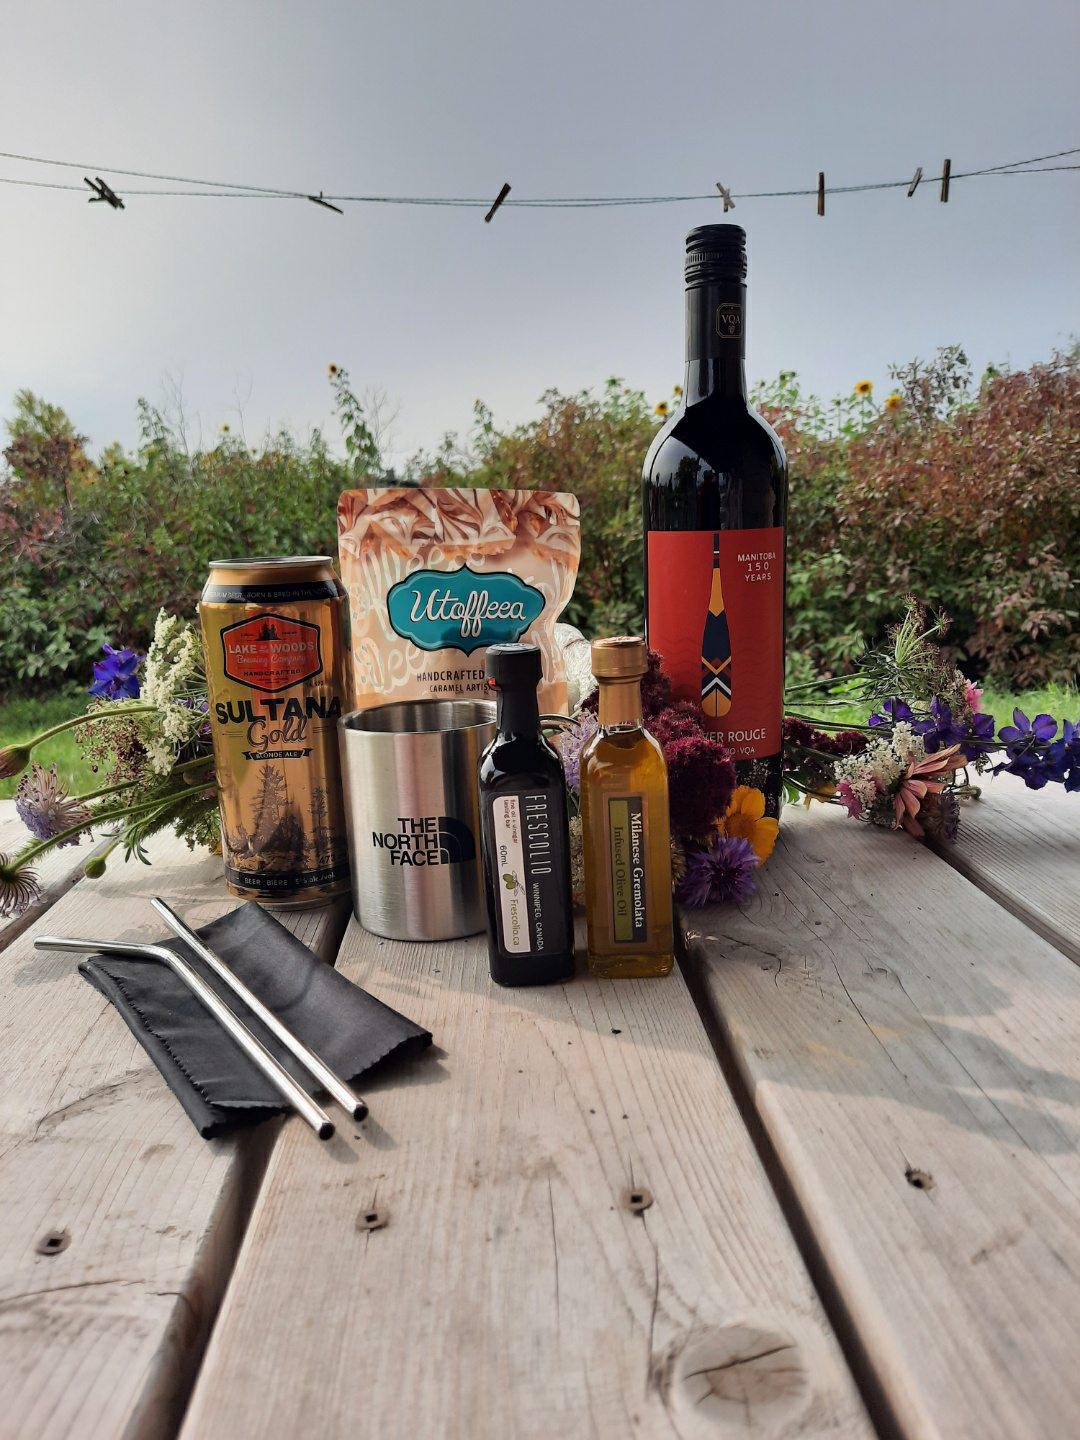 Wine, desserts, reusable cutlery, a mug, and more are clustered together on a picnic table.